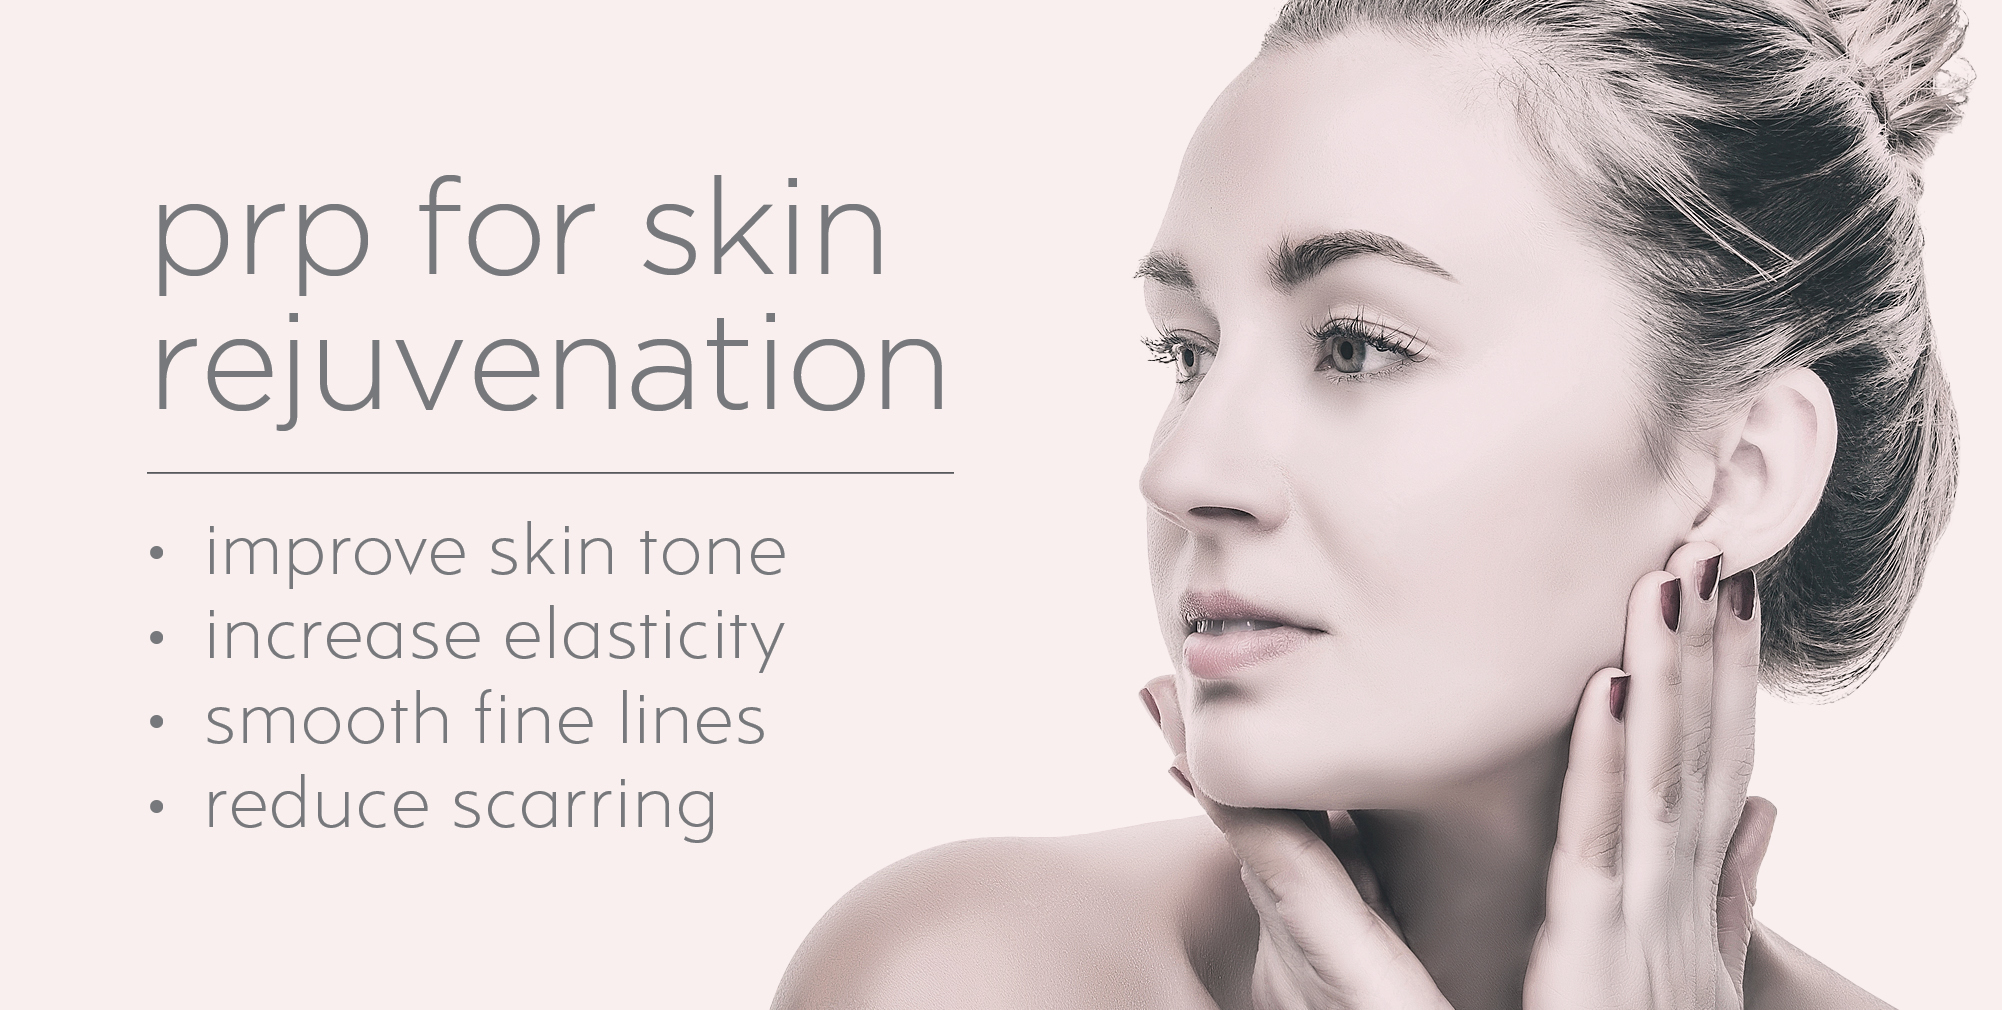 The benefits of PRP for skin rejuvenation in Tampa, Florida.